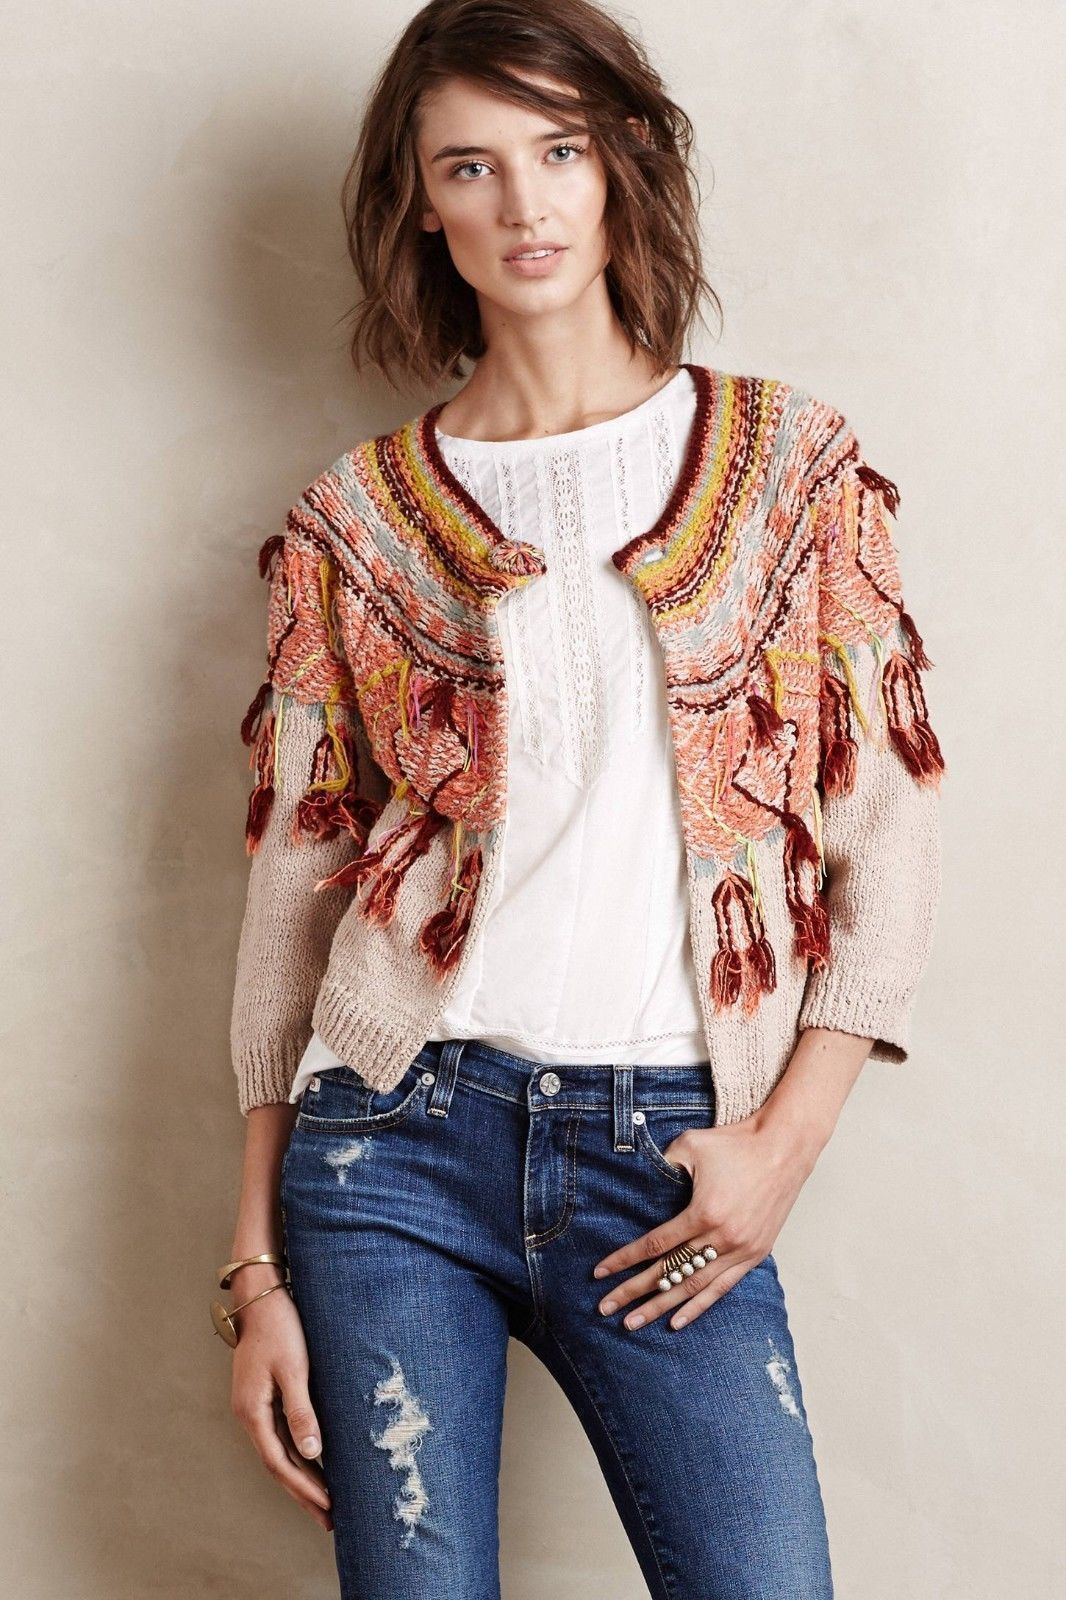 Primary image for NWT ANTHROPOLOGIE GUAJAVA FRINGED CARDIGAN SWEATER by MOTH M